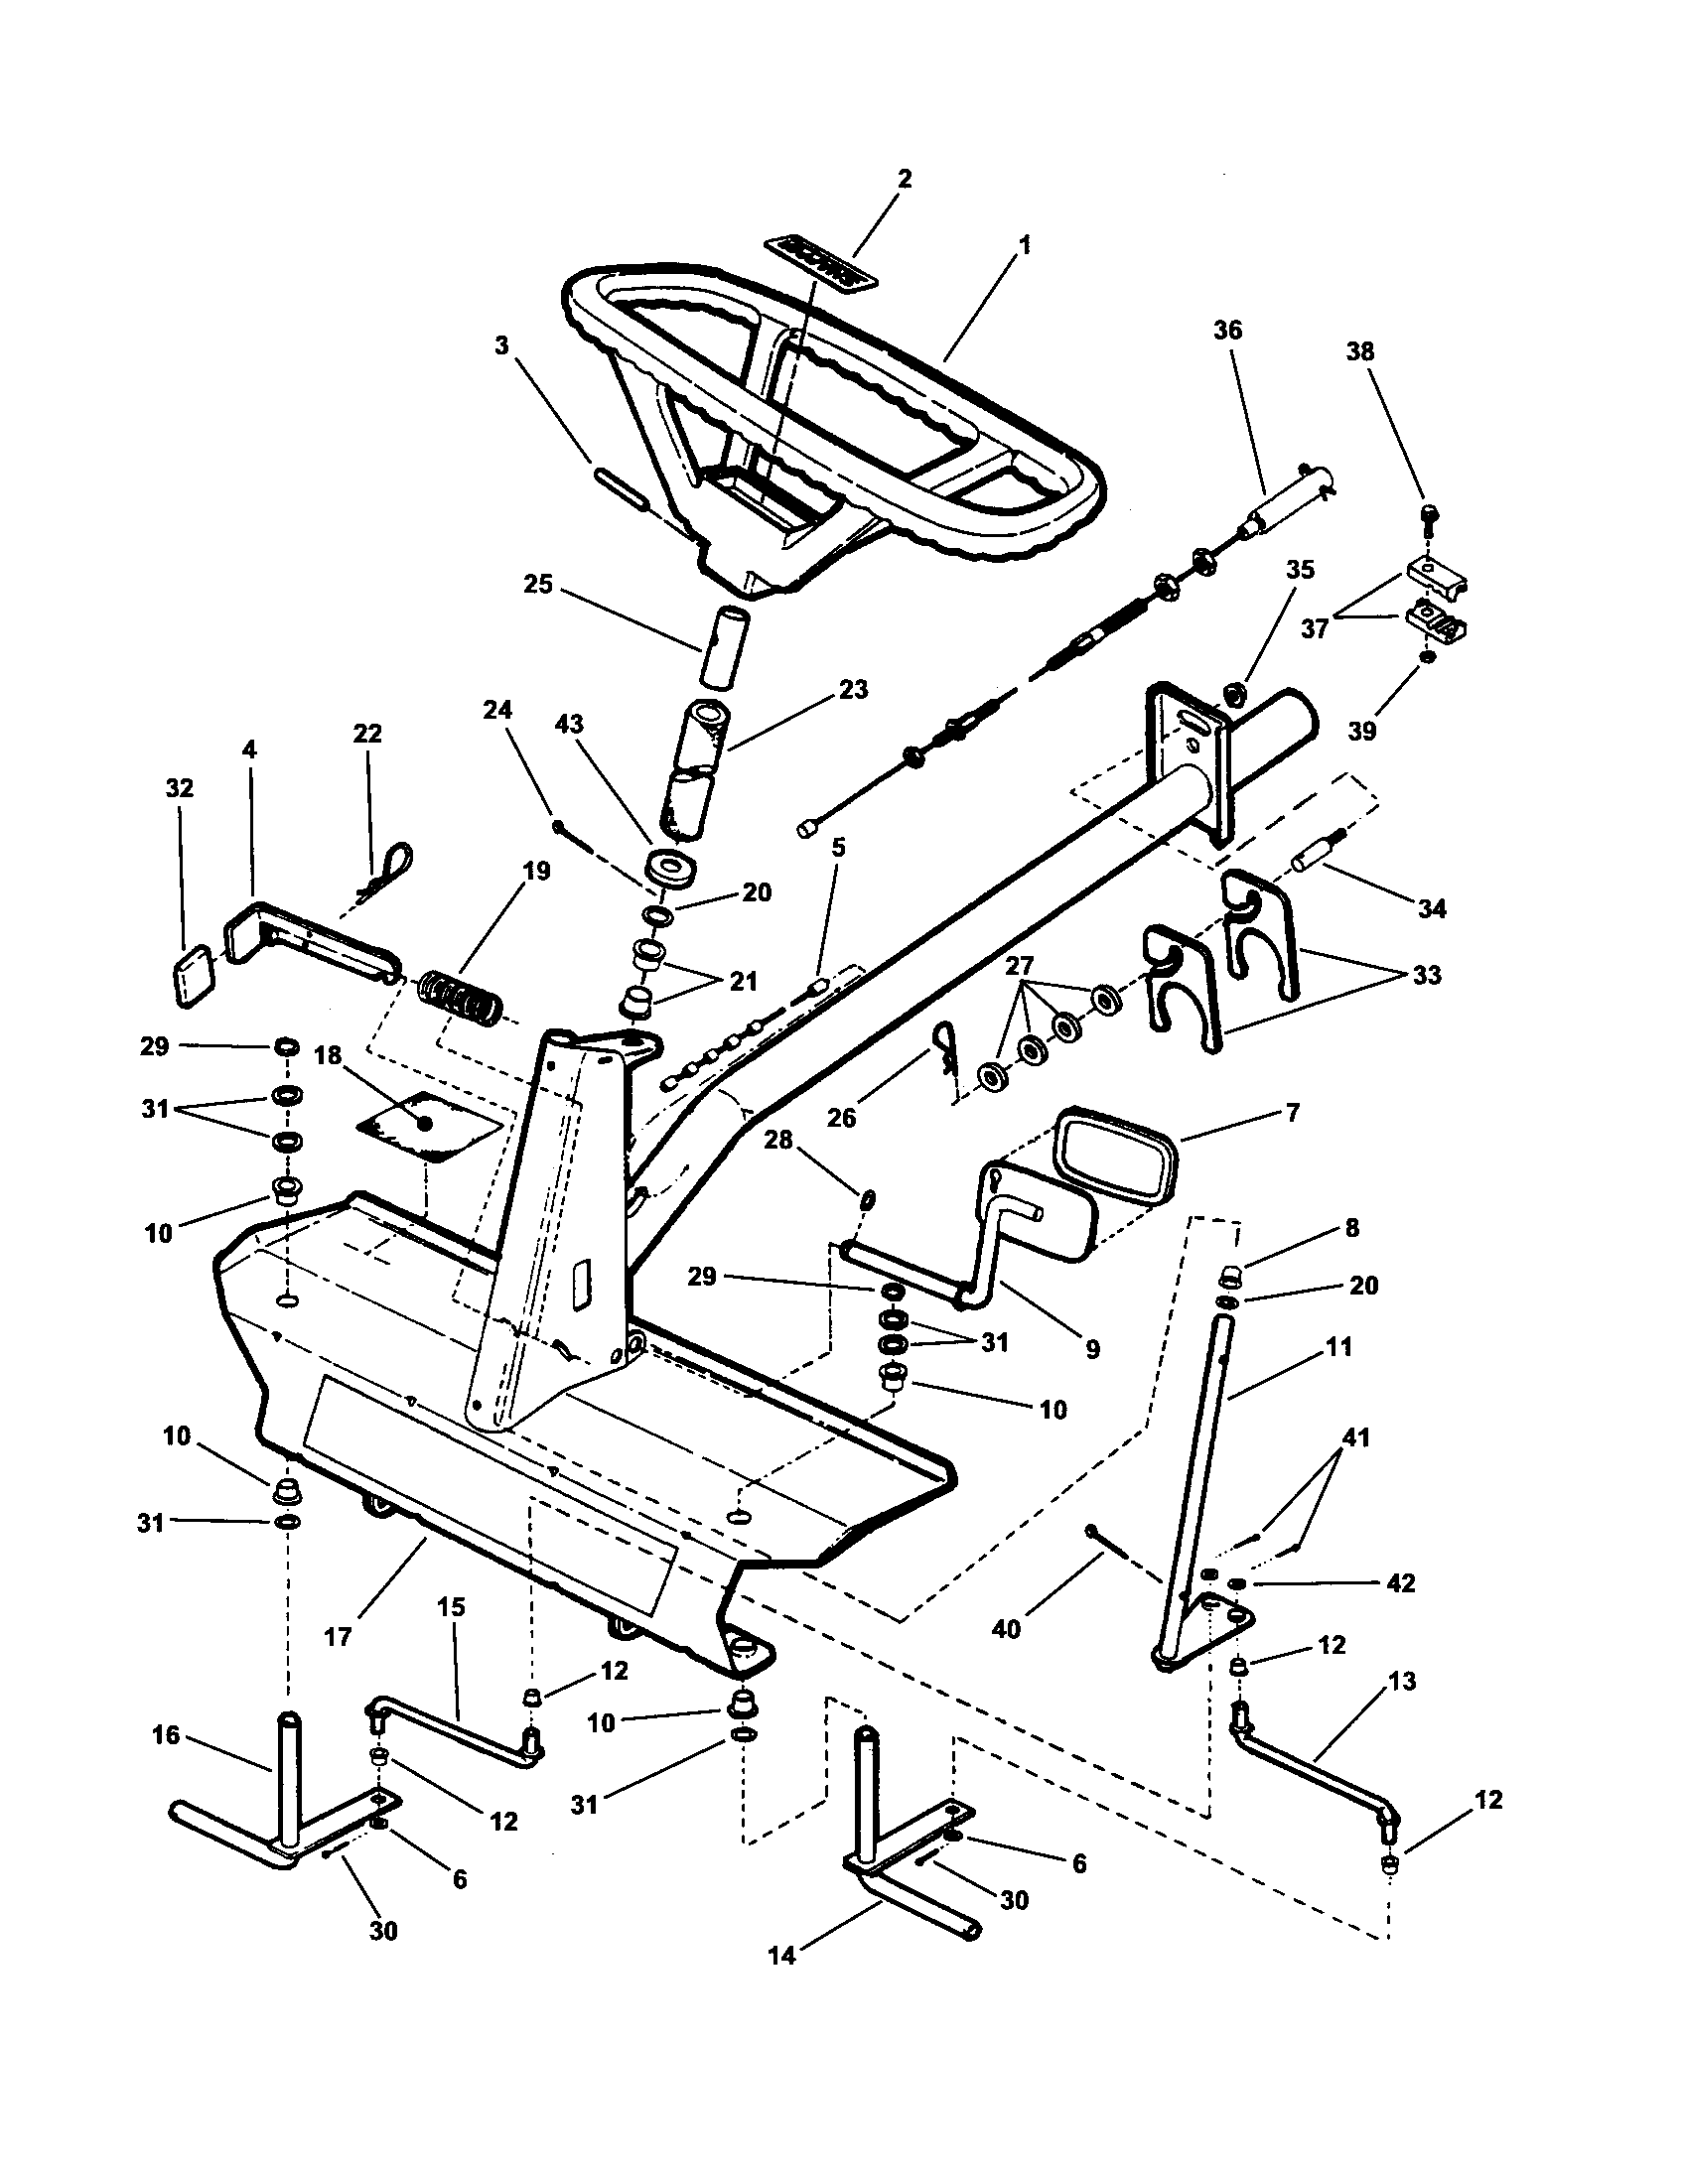 hight resolution of snapper wm280921b front end steering diagram